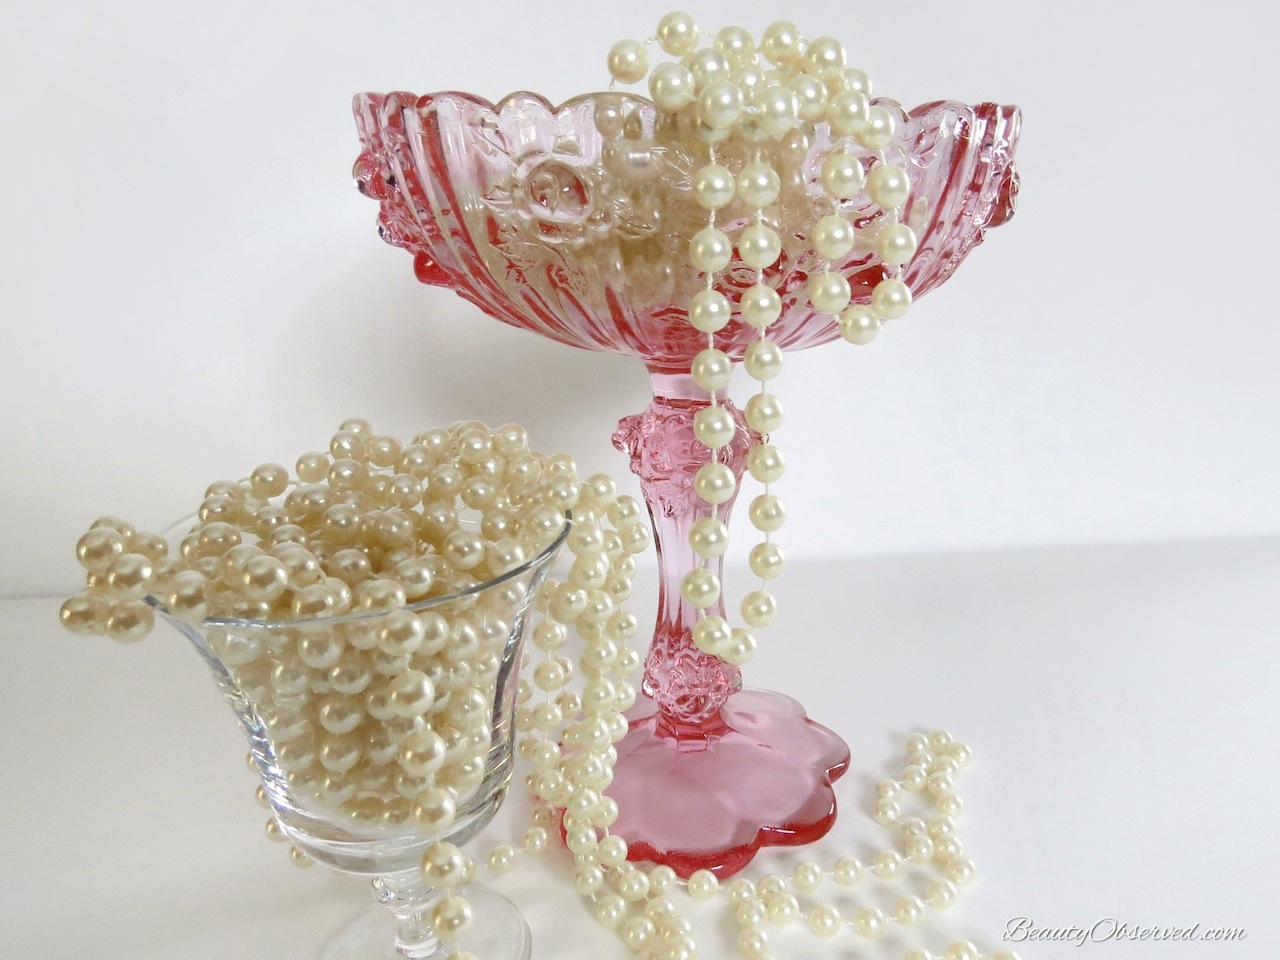 Pink Candy Dish with Pearls